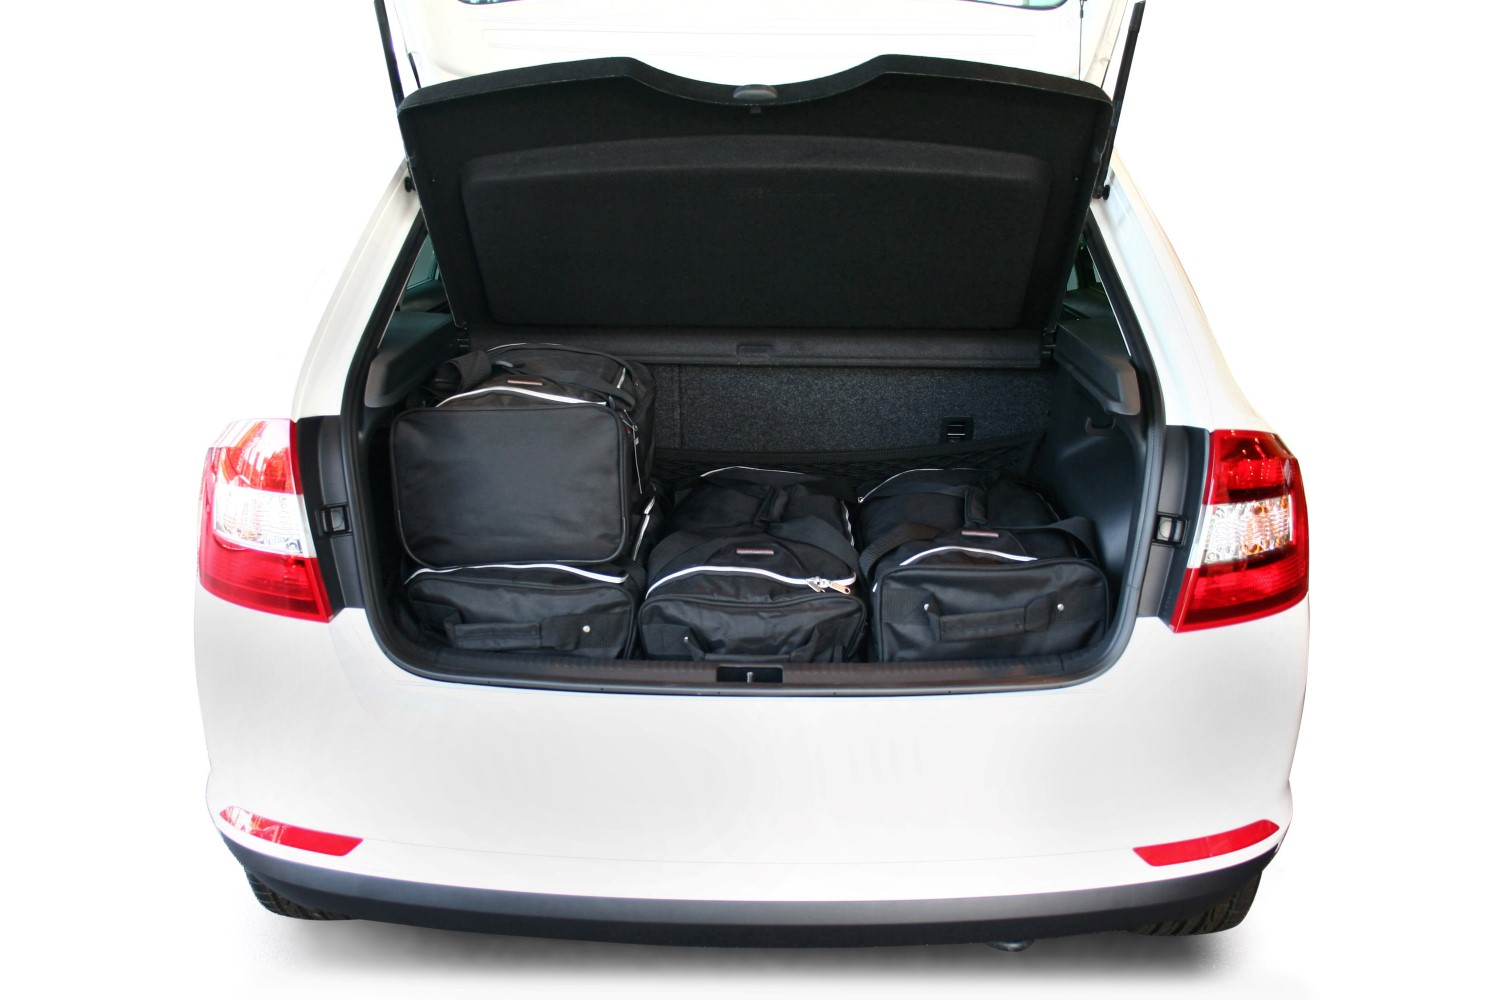 rapid spaceback skoda rapid spaceback nh1 2013 heden 5d car bags reistassenset. Black Bedroom Furniture Sets. Home Design Ideas